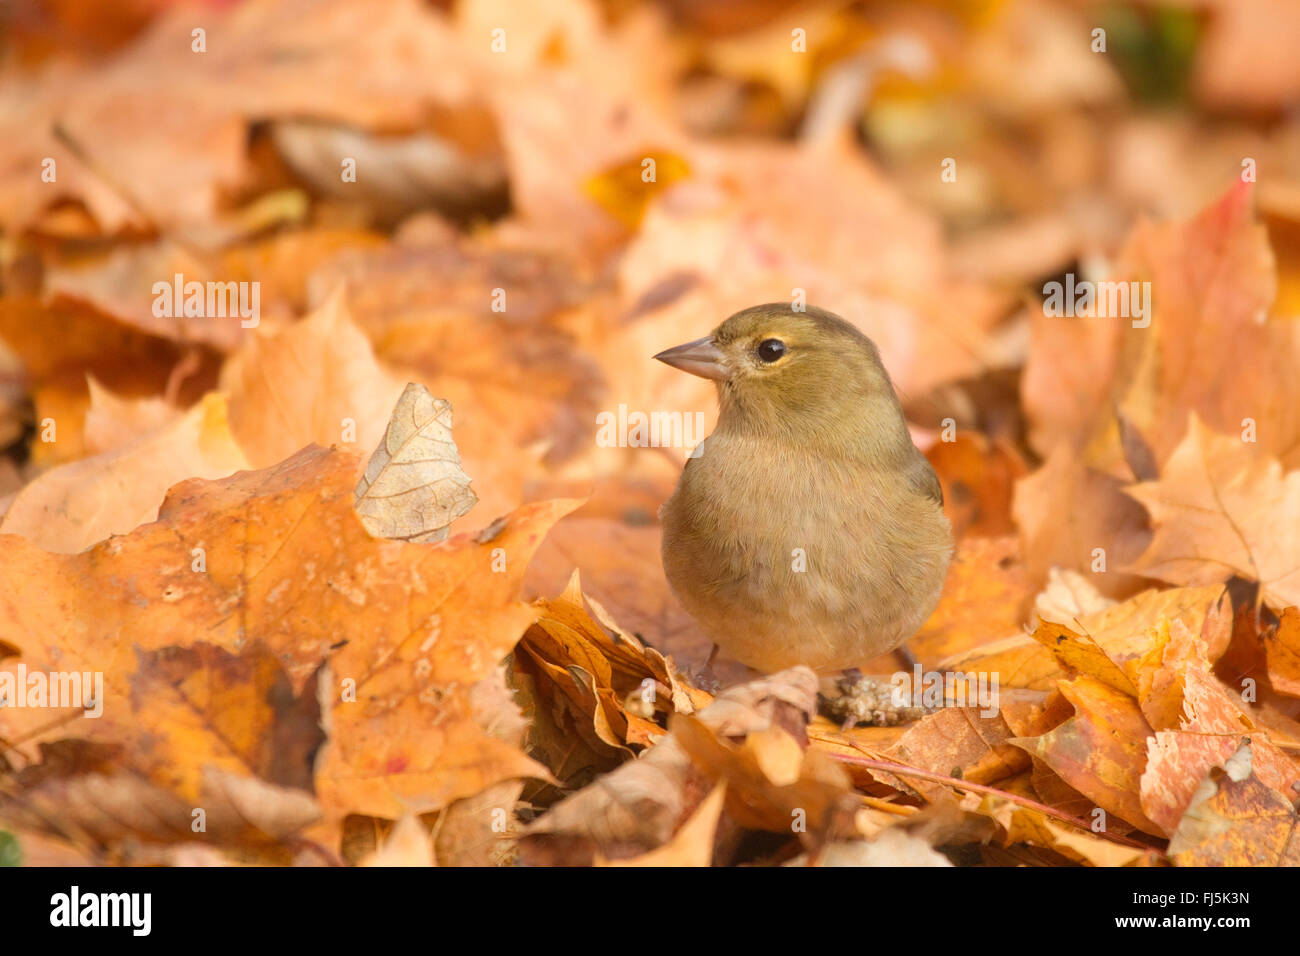 chaffinch (Fringilla coelebs), female sitting between leaves on the forest ground, Germany, North Rhine-Westphalia - Stock Image